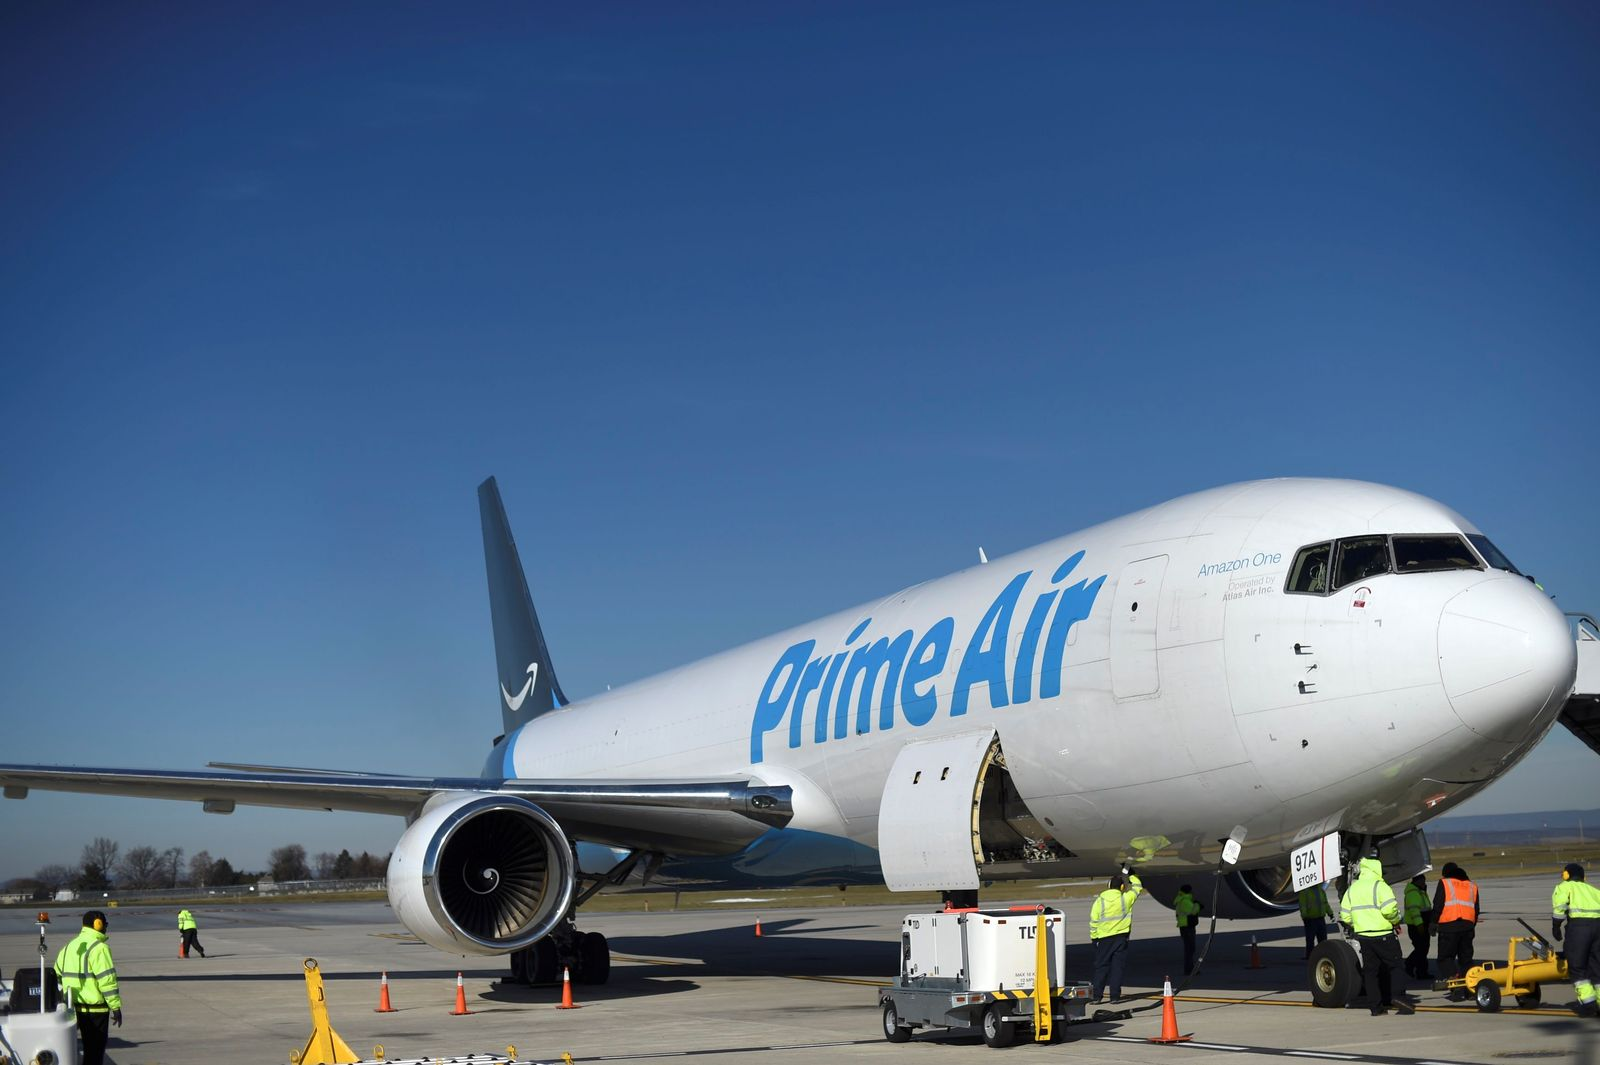 Amazons Prime Air